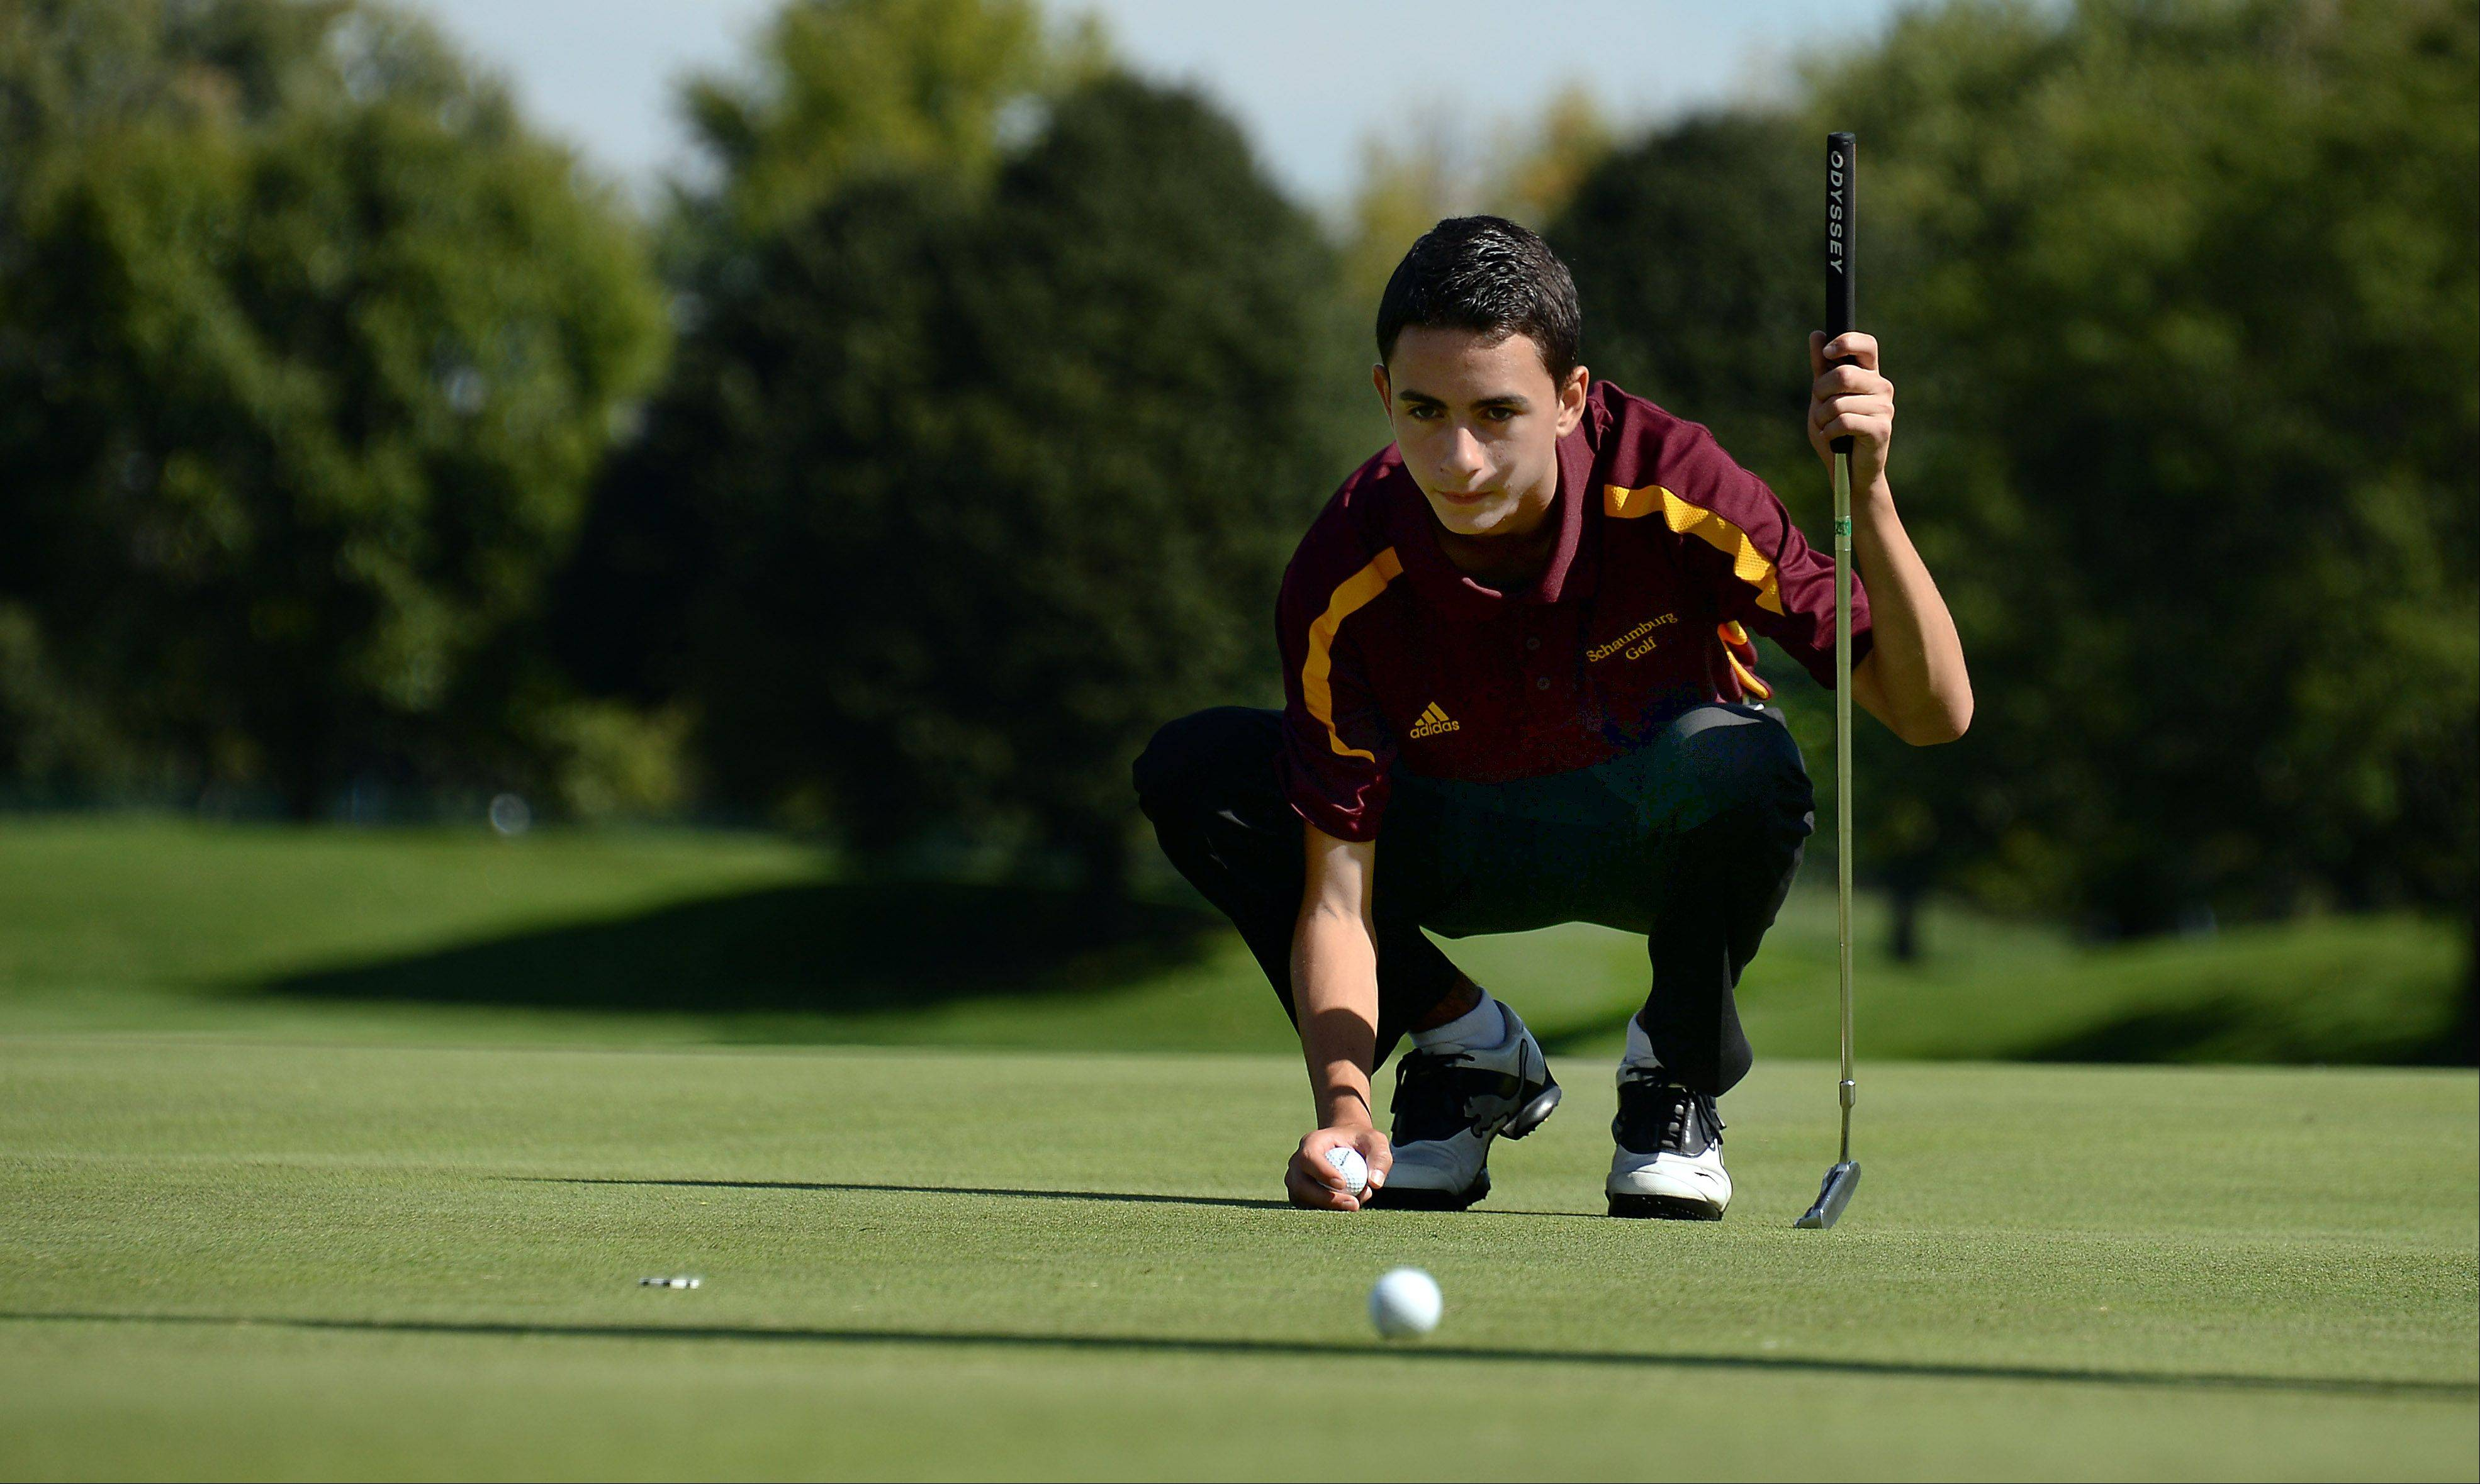 Schaumburg's Brandon Tudor lines up his putt on No. 19 during the Mid-Suburban League championship at Schaumburg Golf Club on Monday.